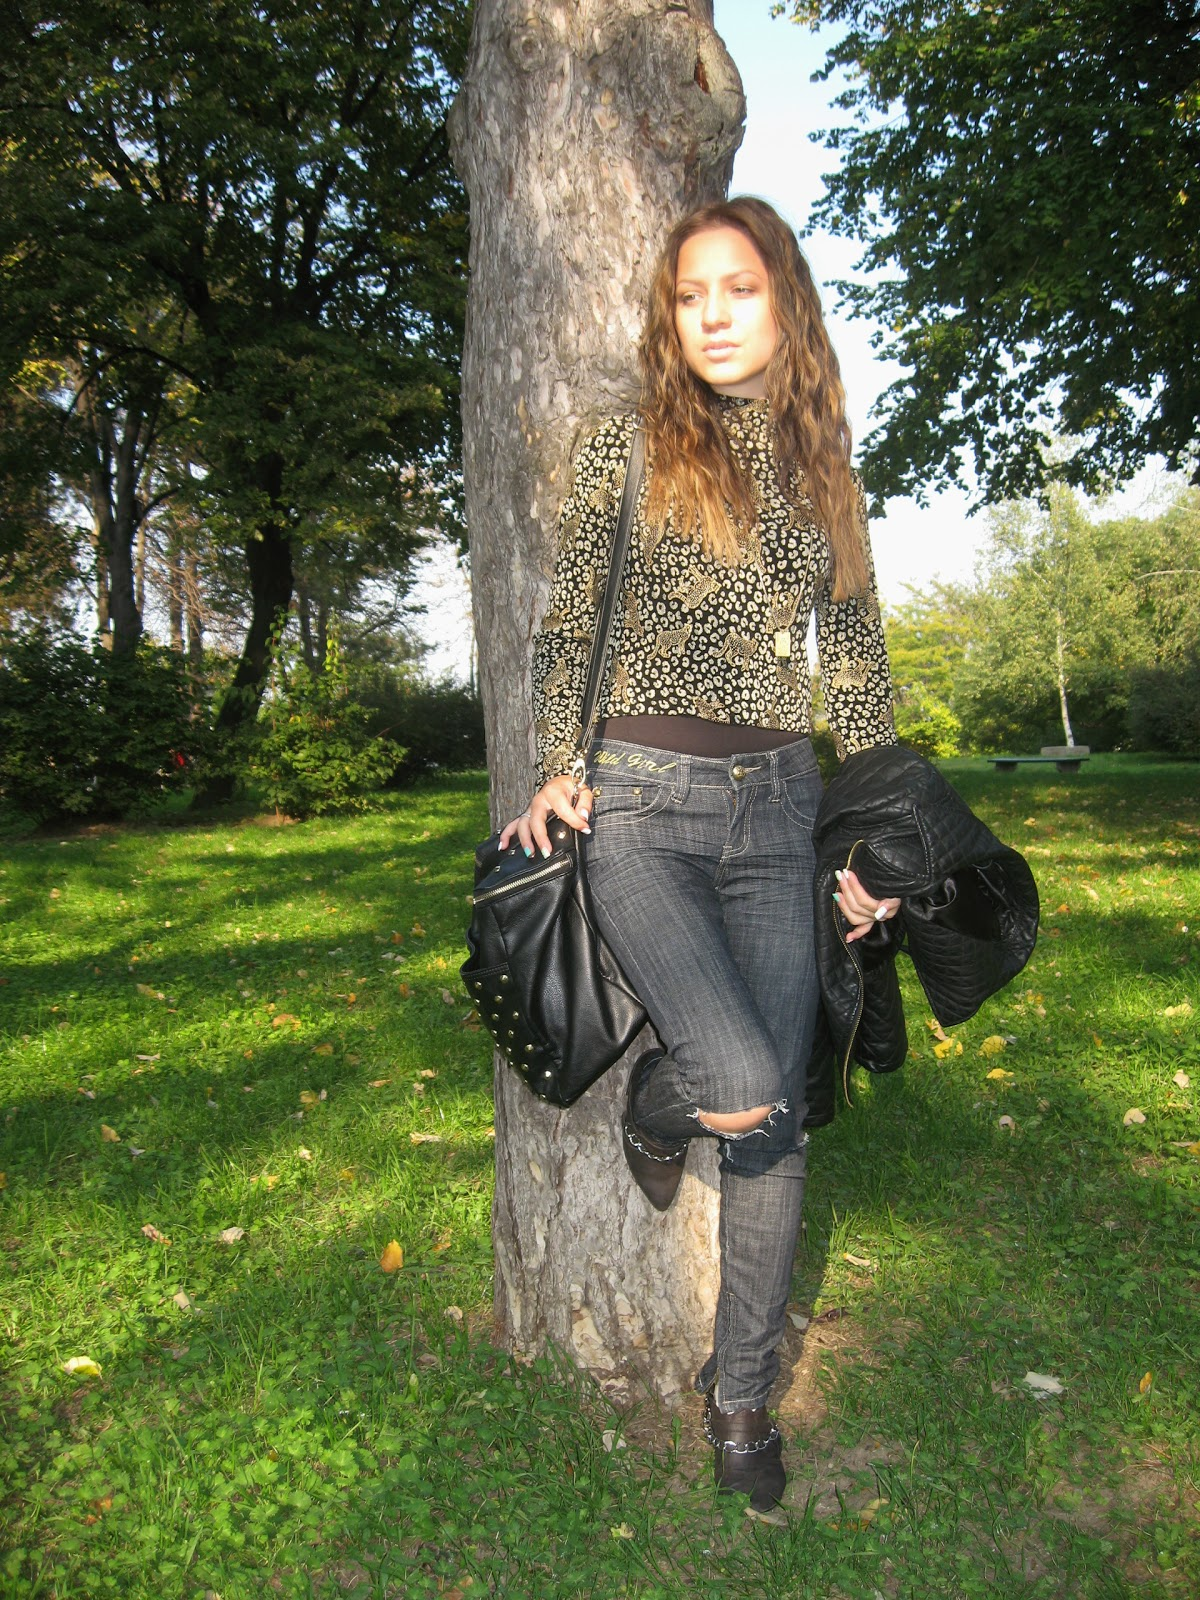 outfit, turtleneck top, skinny jeans with ripped knees, c&a black pu faux leather jacket, carpisa black studded bag, black top with gold details, wavy hairstyle